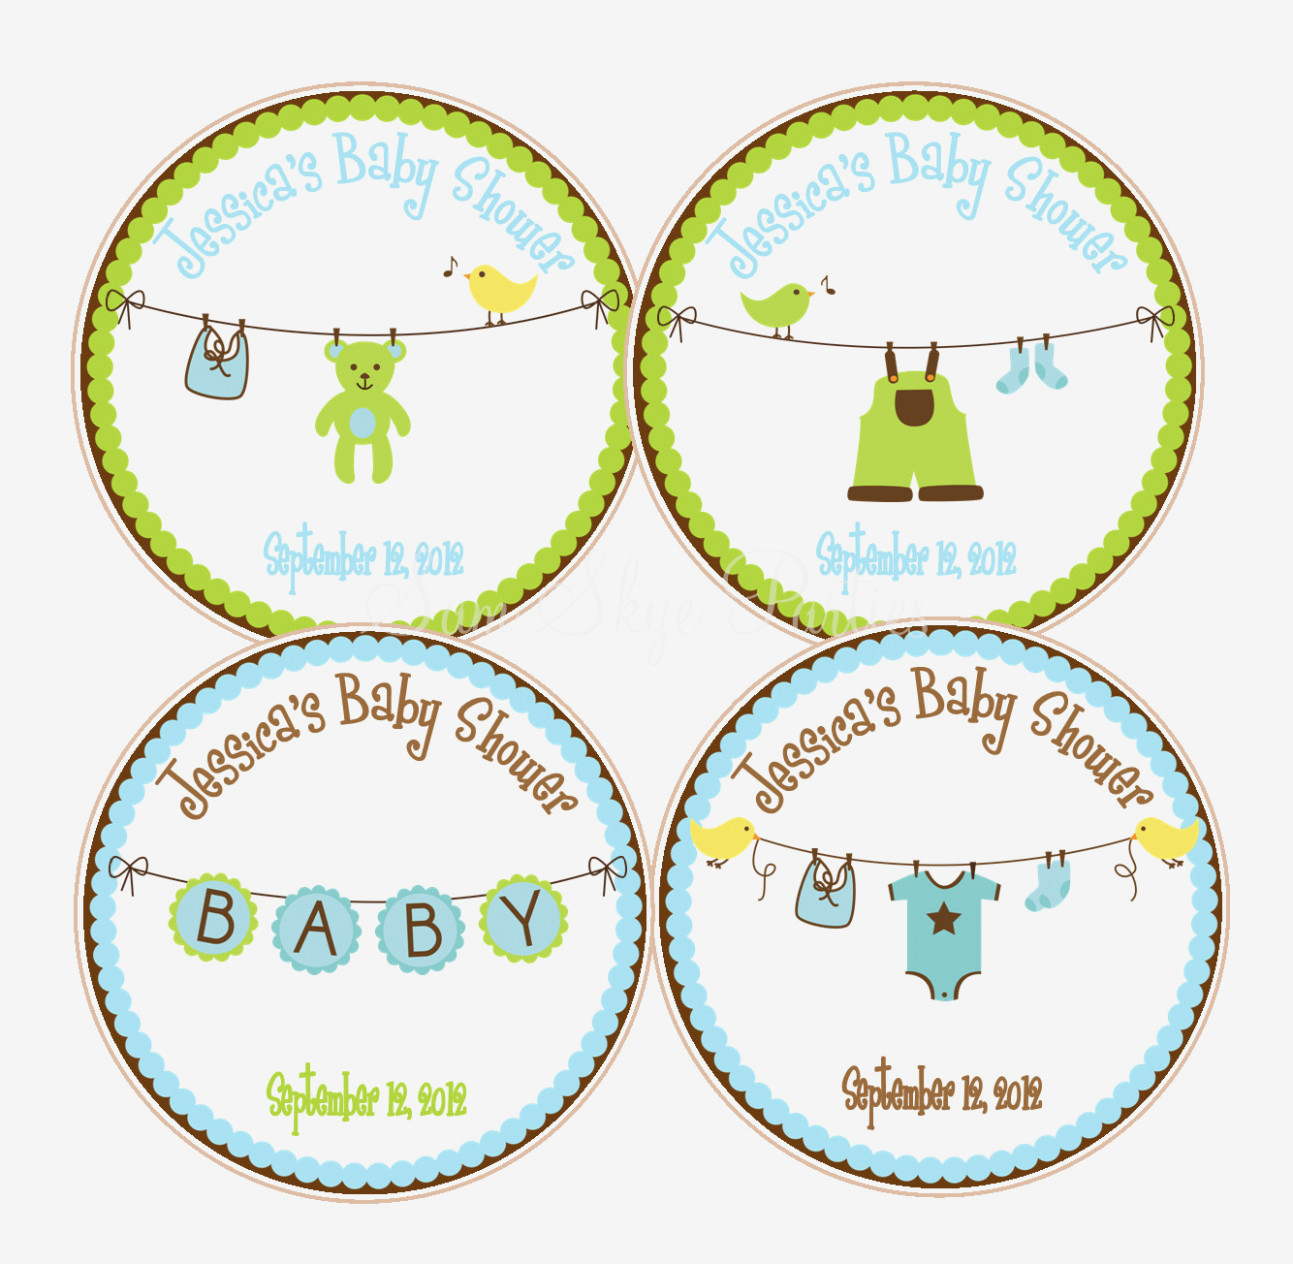 Baby Shower Labels Templates Favor Wording Label Ideas Tags Diy Free - Free Printable Baby Shower Favor Tags Template